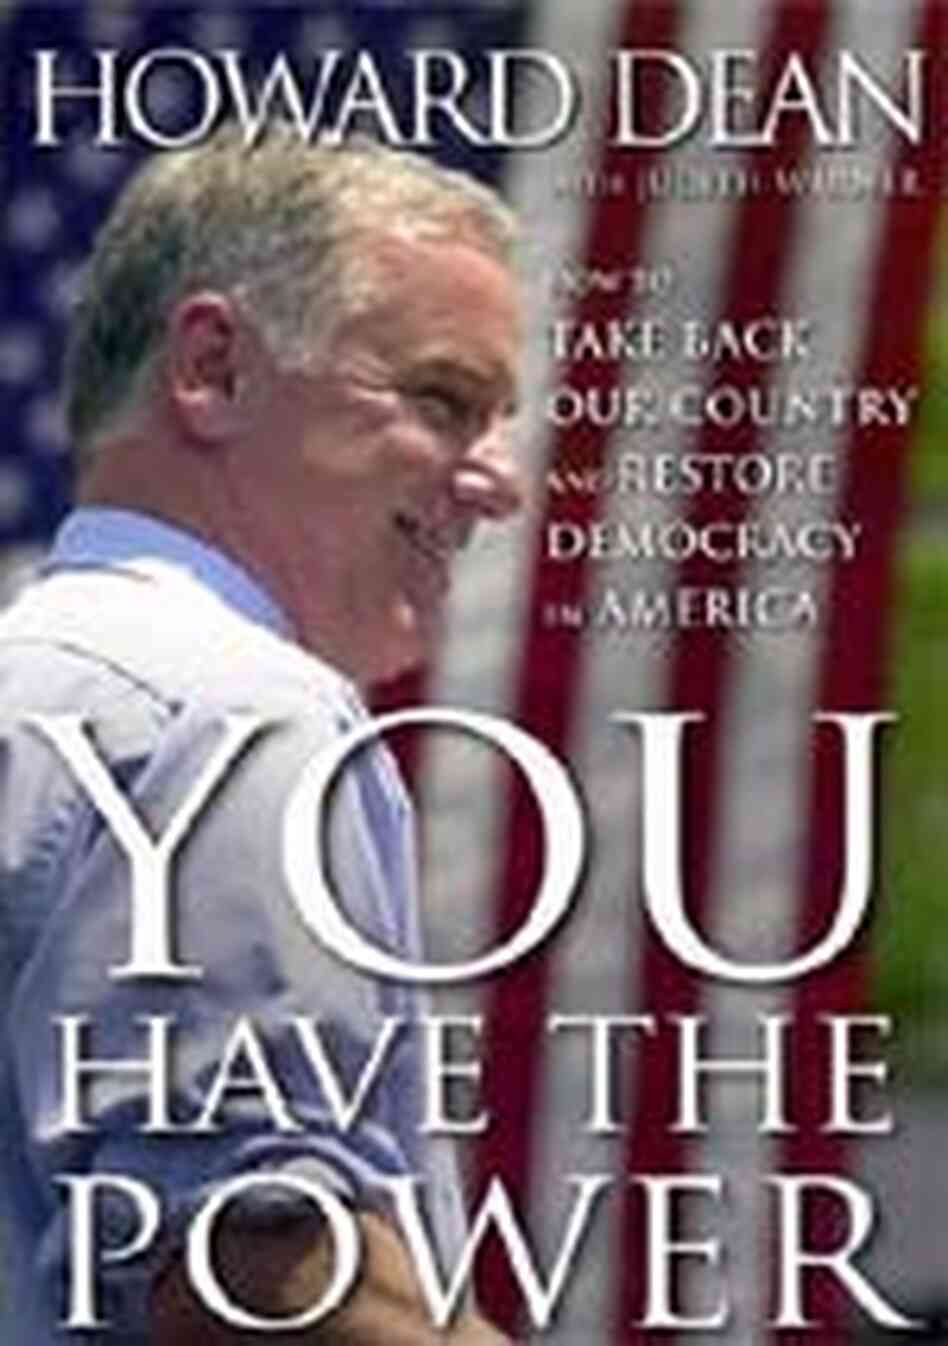 'You Have the Power' by Howard Dean